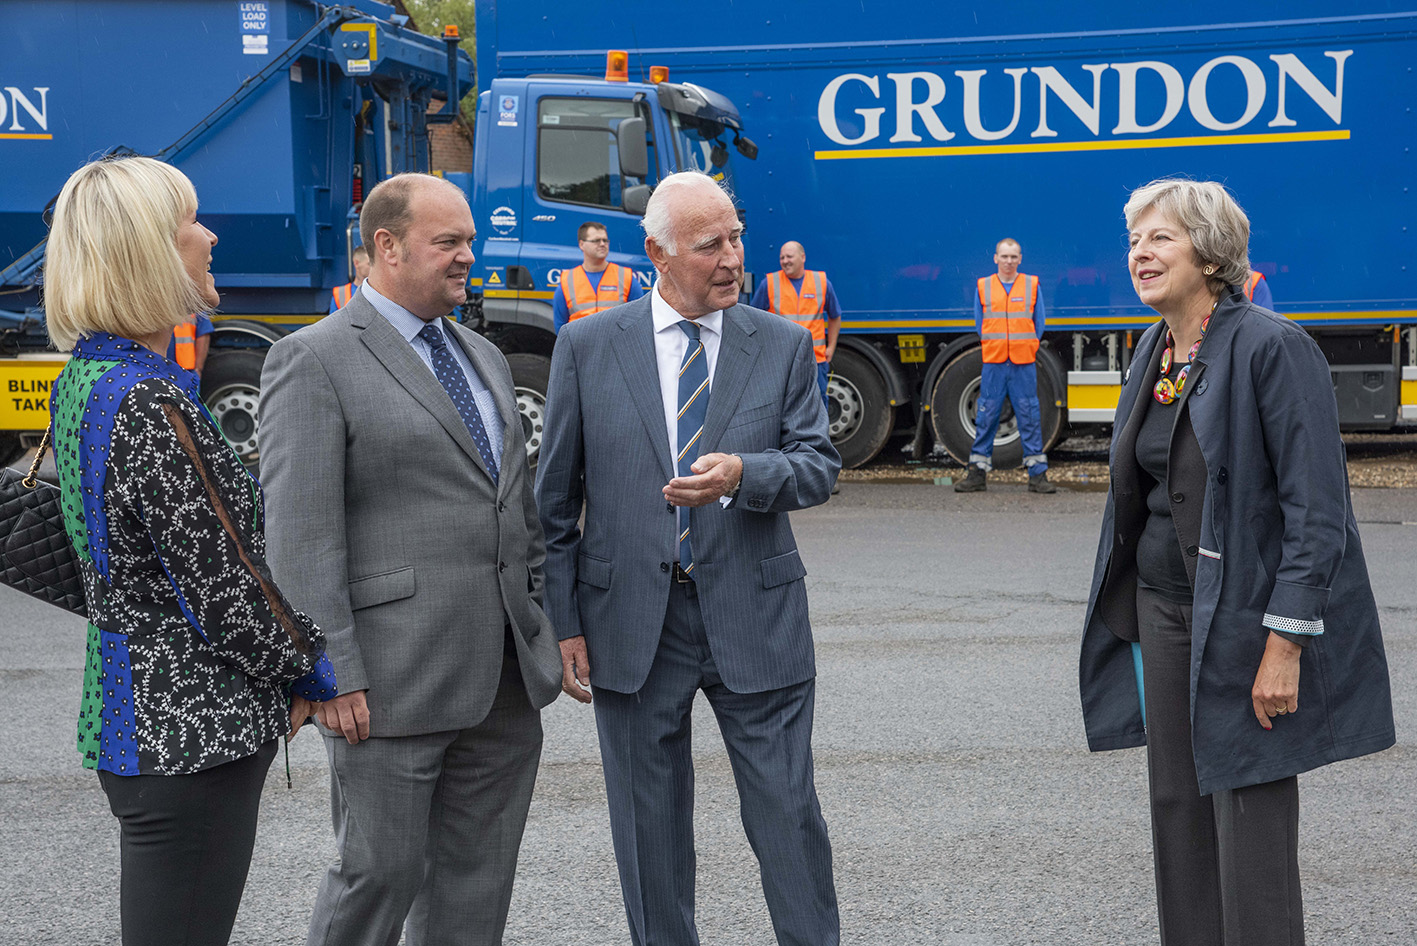 Theresa May MP was welcomed to Grundon's Knowl Hill clinical waste operation by Louise Woodbridge; Clayton Sullivan-Webb, Managing Director; and Norman Grundon, Chairman